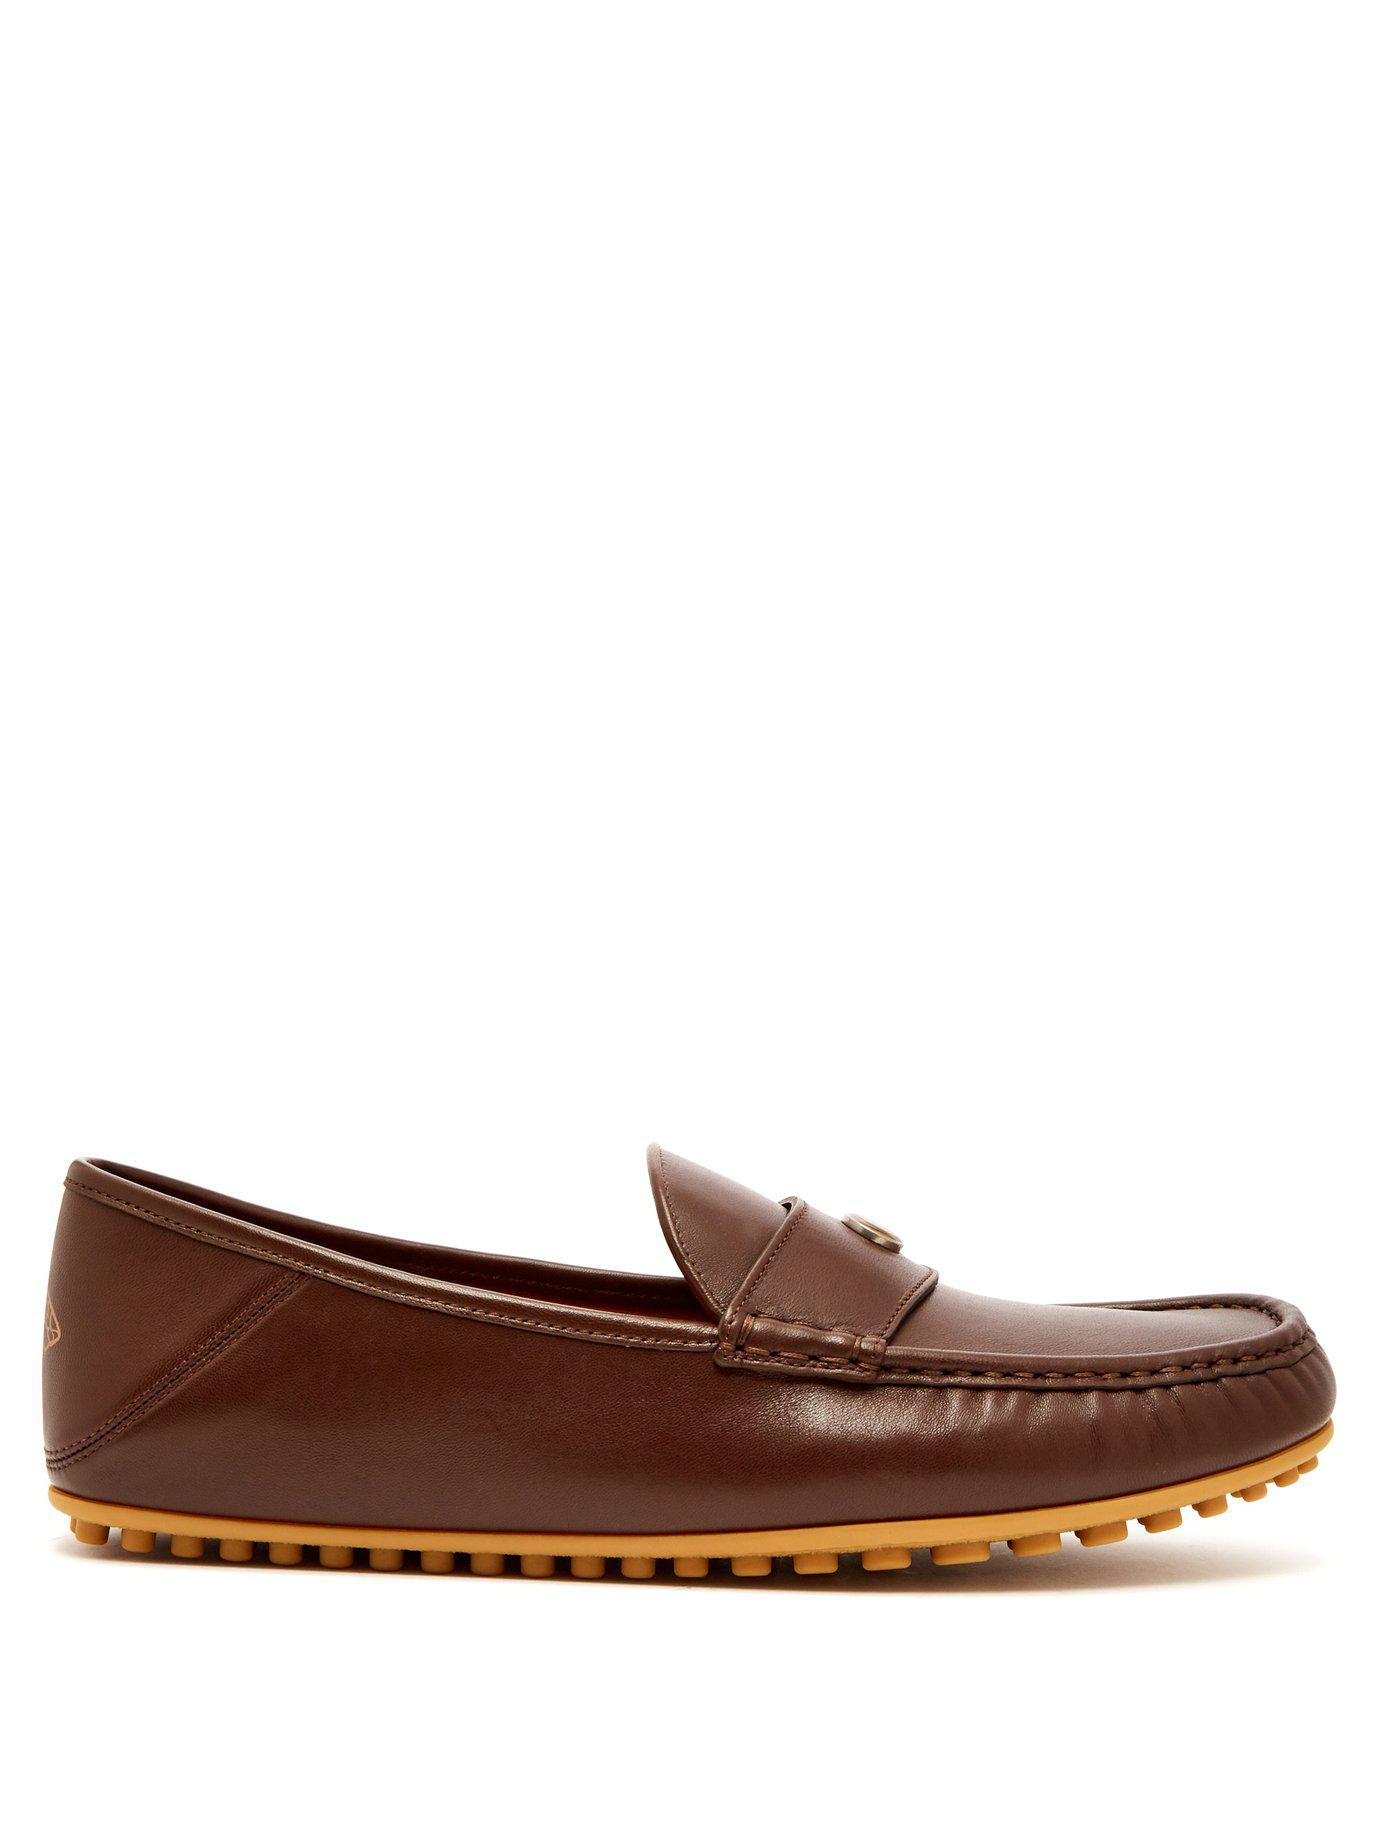 89a13fd1cac Lyst - Gucci Kanye Leather Loafers in Brown for Men